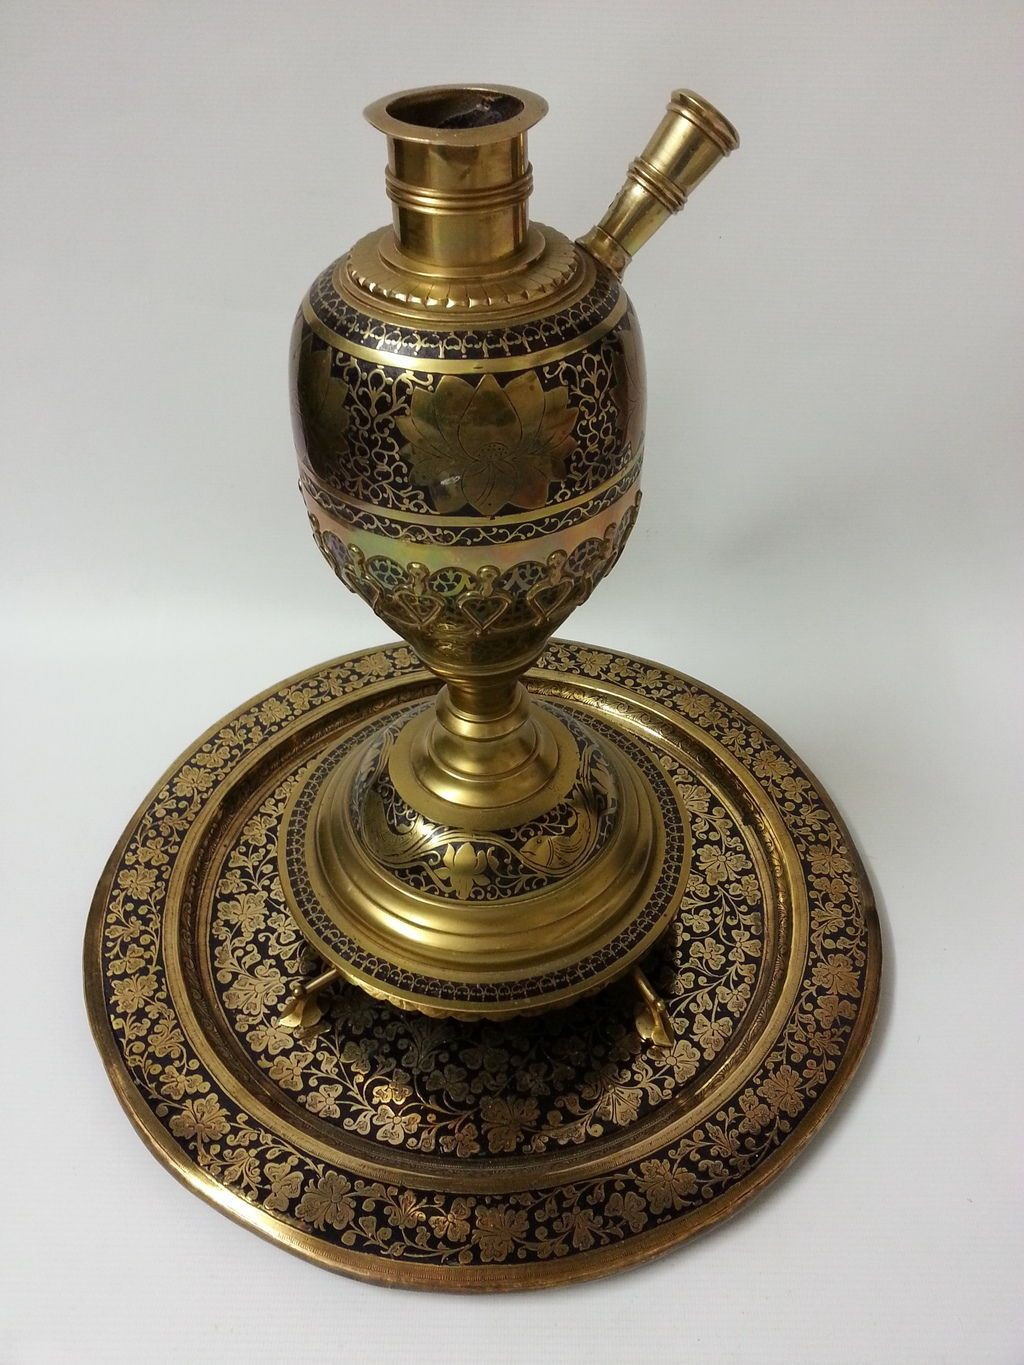 Antique Brass Vases From India Of Very Decorative Large Persian islamic Indian Brass Hookah Base and Pertaining to Very Decorative Large Persian islamic Indian Brass Hookah Base and Tray Set Ebay Ottomans